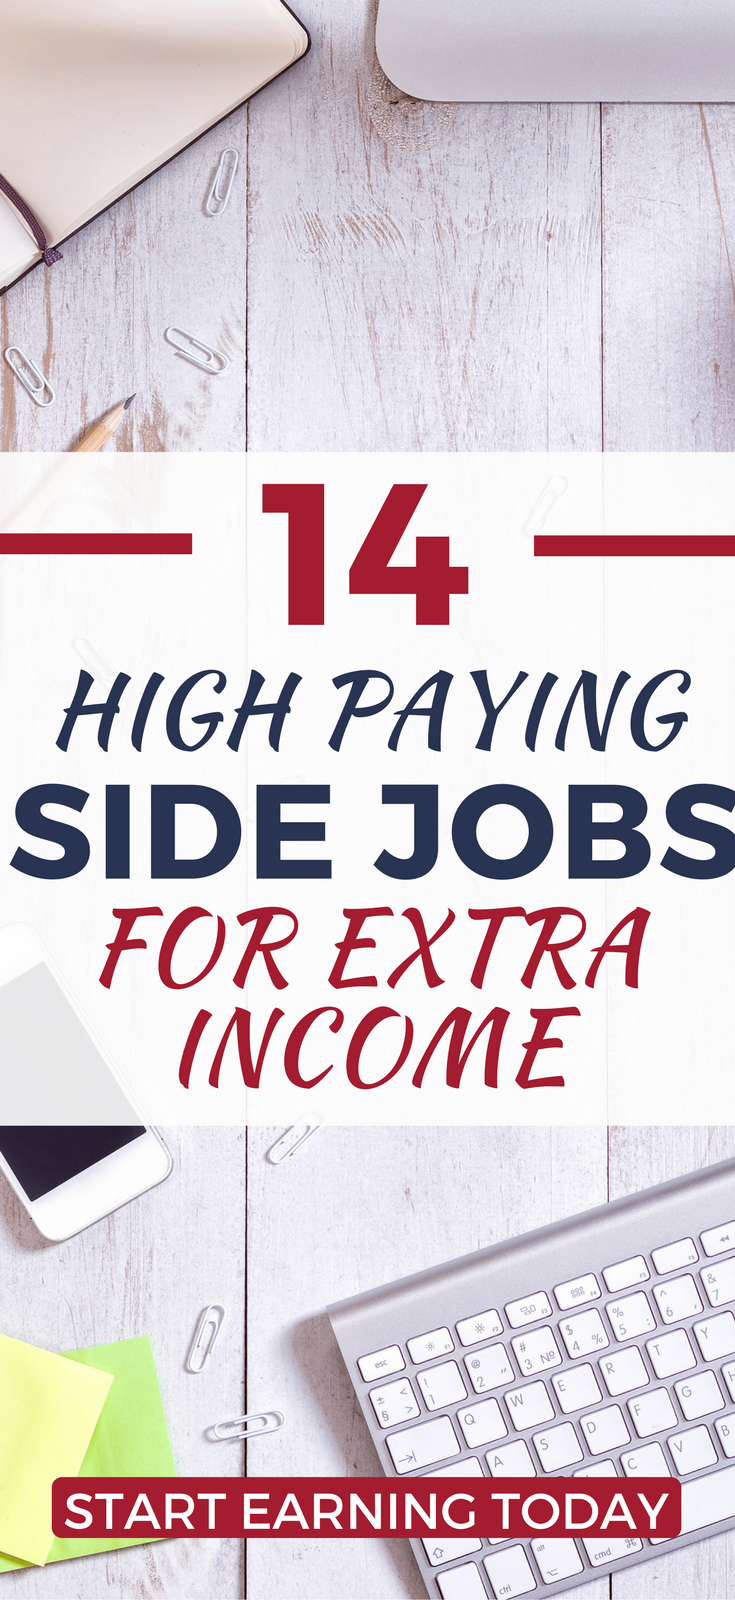 20 High-Paying Part-Time Weekend Jobs For Extra Income | Make money ...